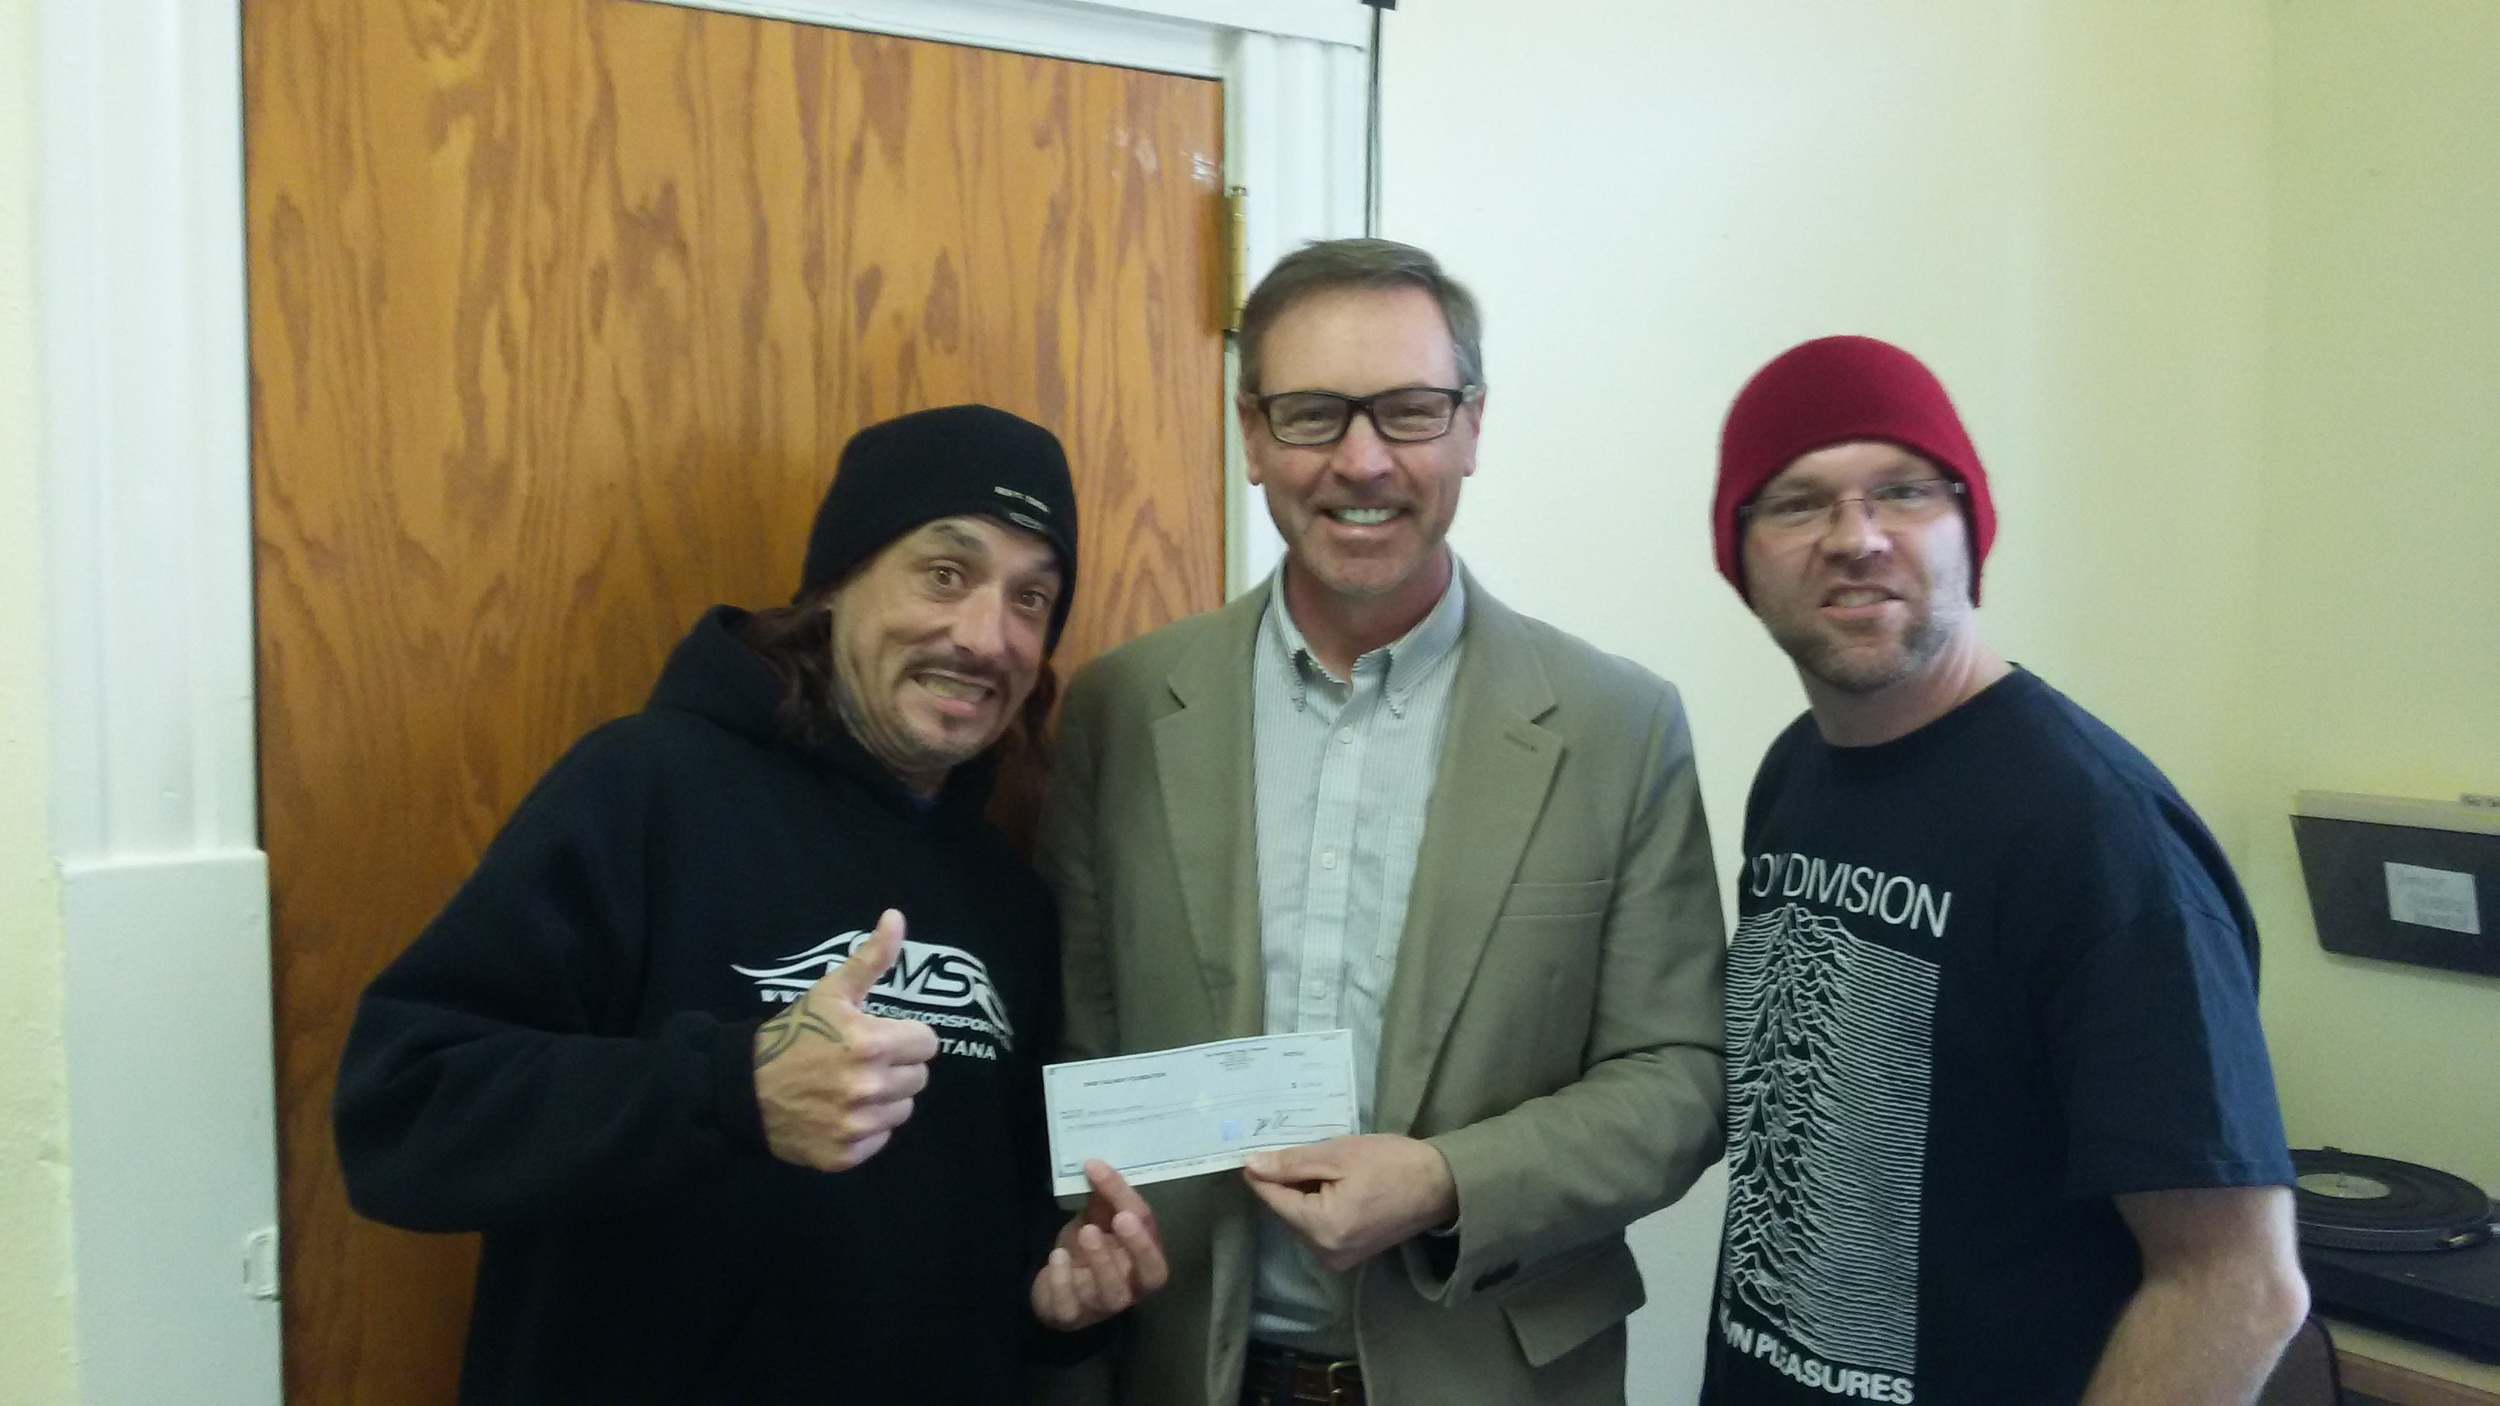 JIM AND GLENN ACCEPT THE BNSF CHARITABLE DONATION